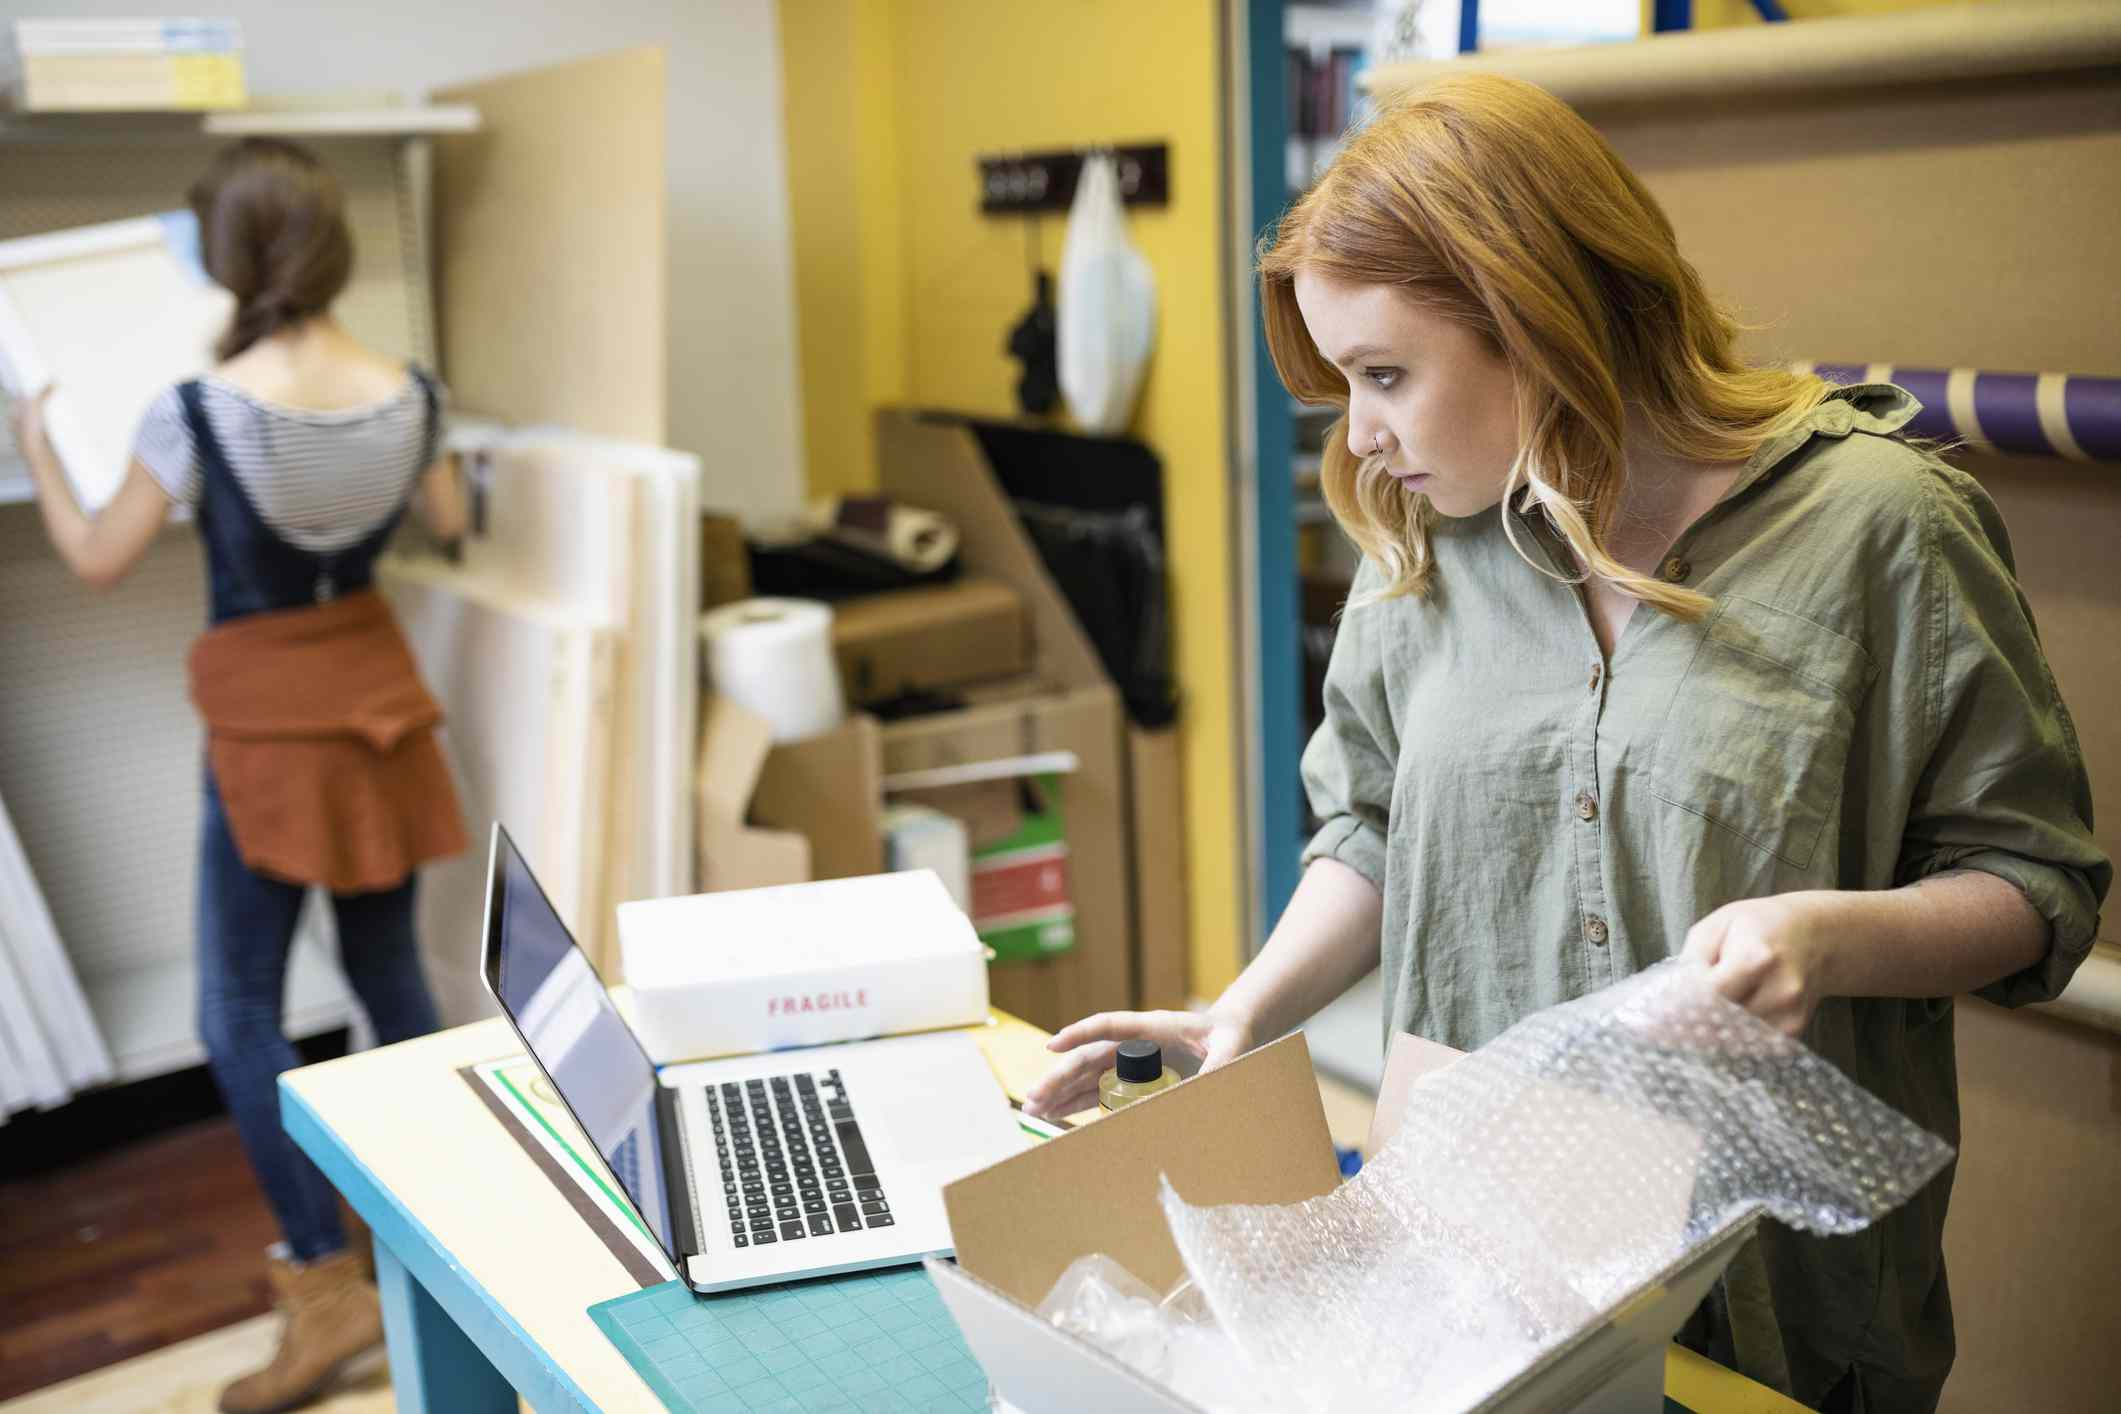 Business owner at laptop shipping online order in art supply shop